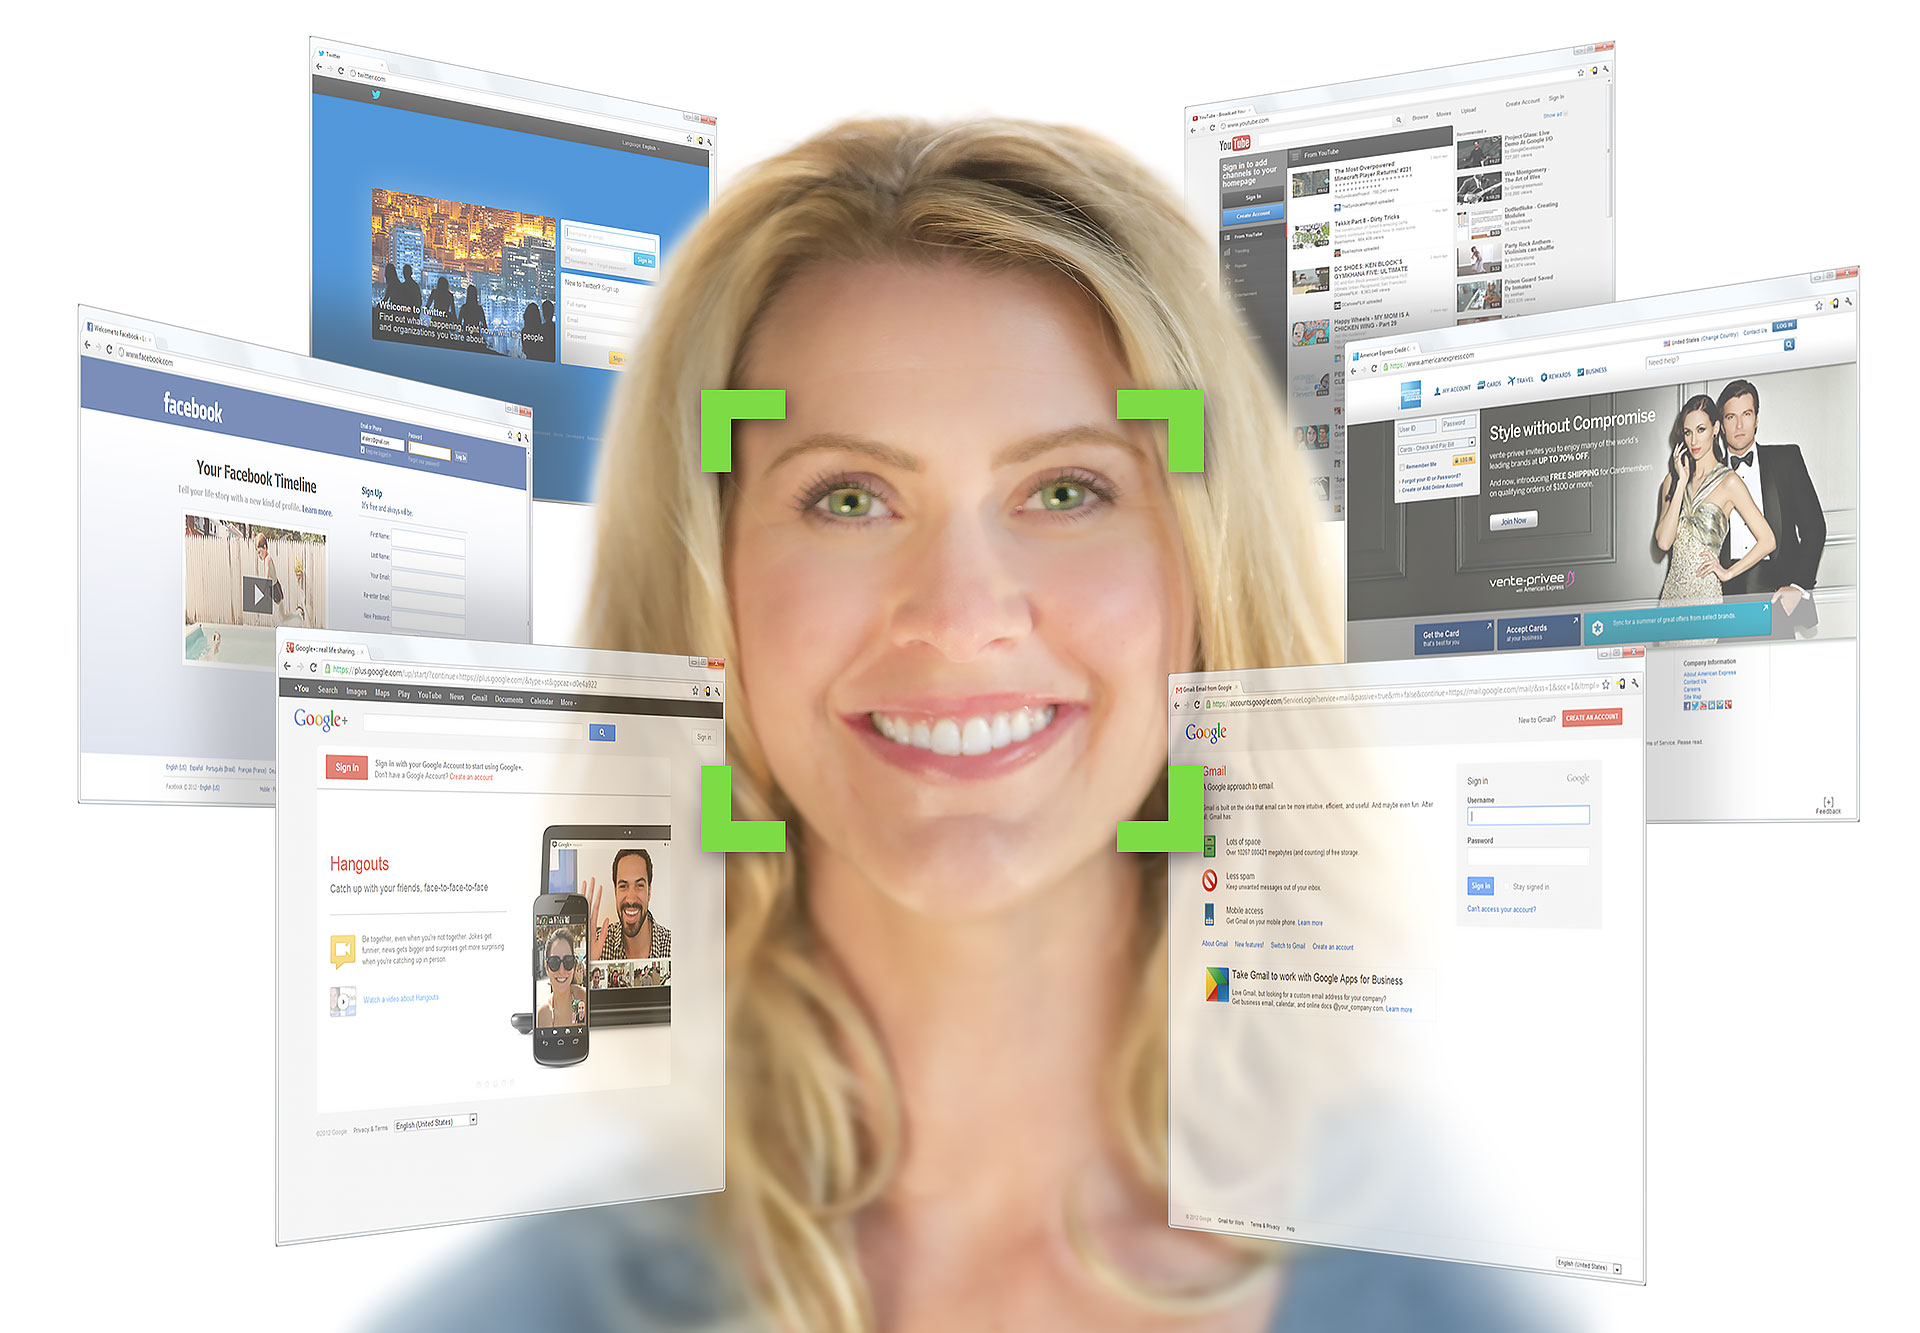 Fastaccess facial recognition